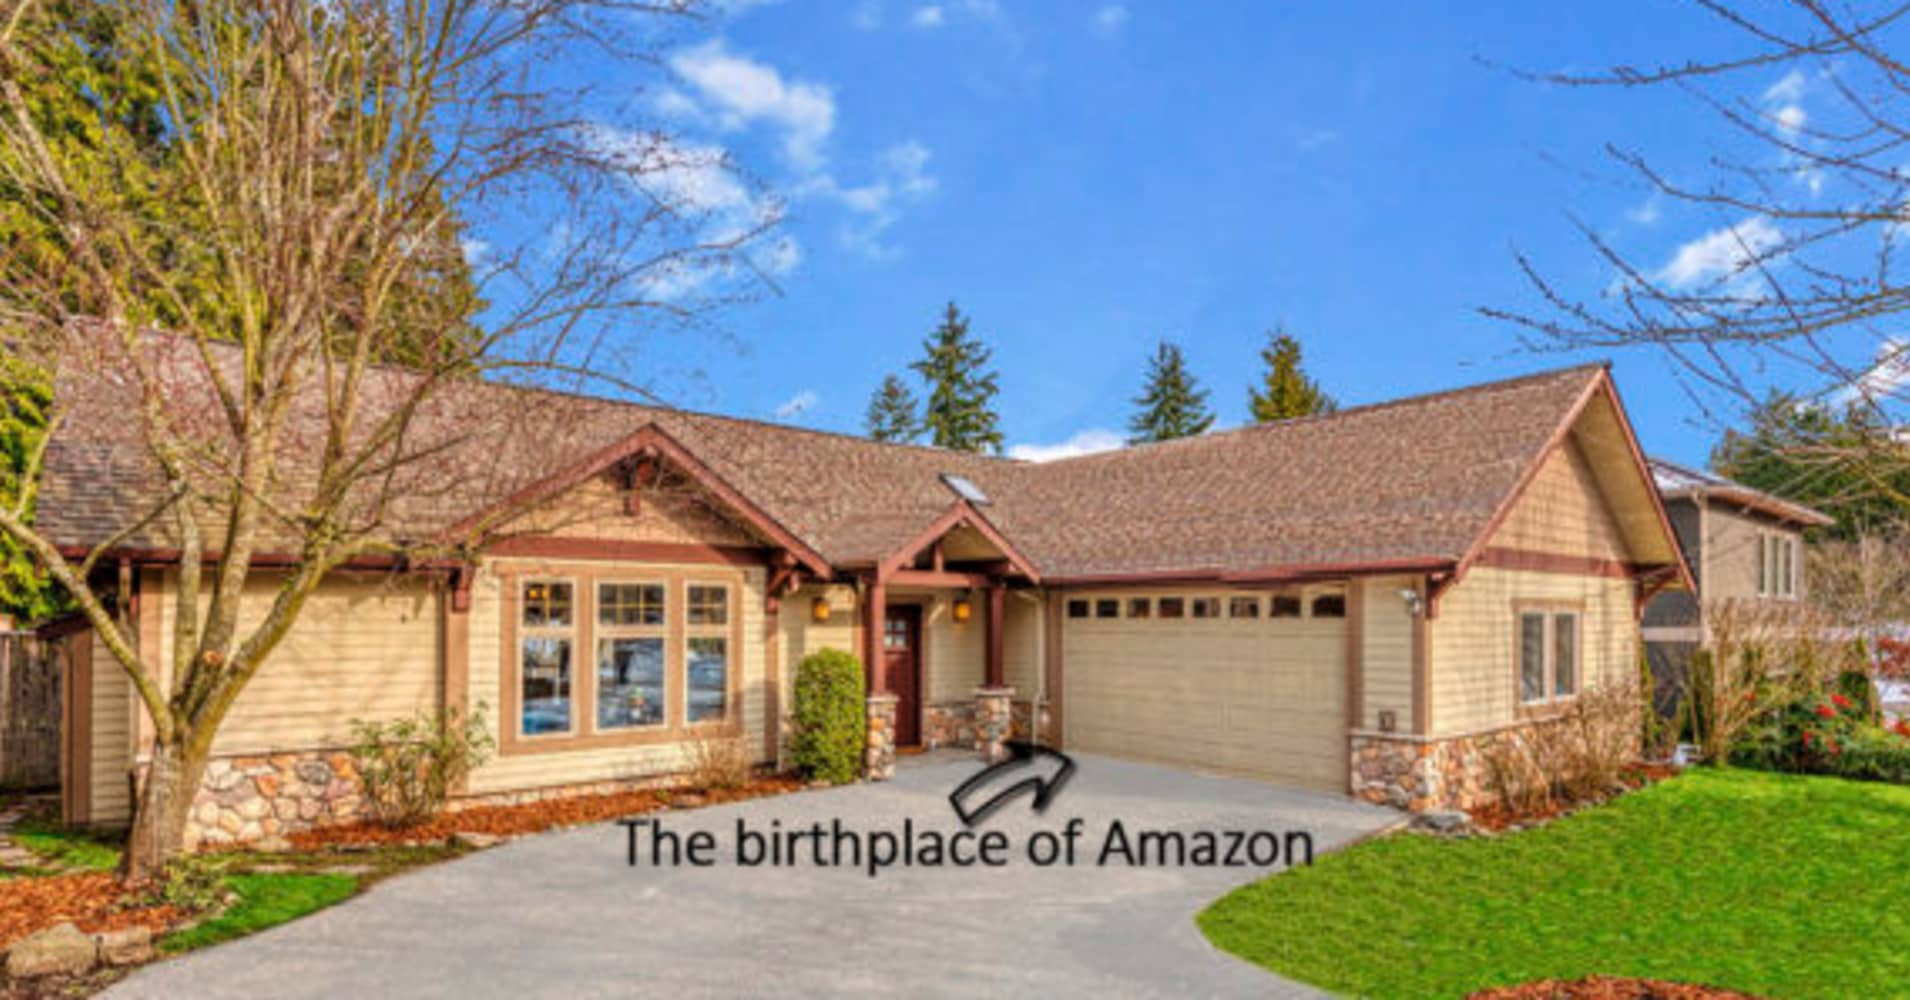 e6cd8766696 The house where Jeff Bezos founded Amazon is on sale for a bargain price